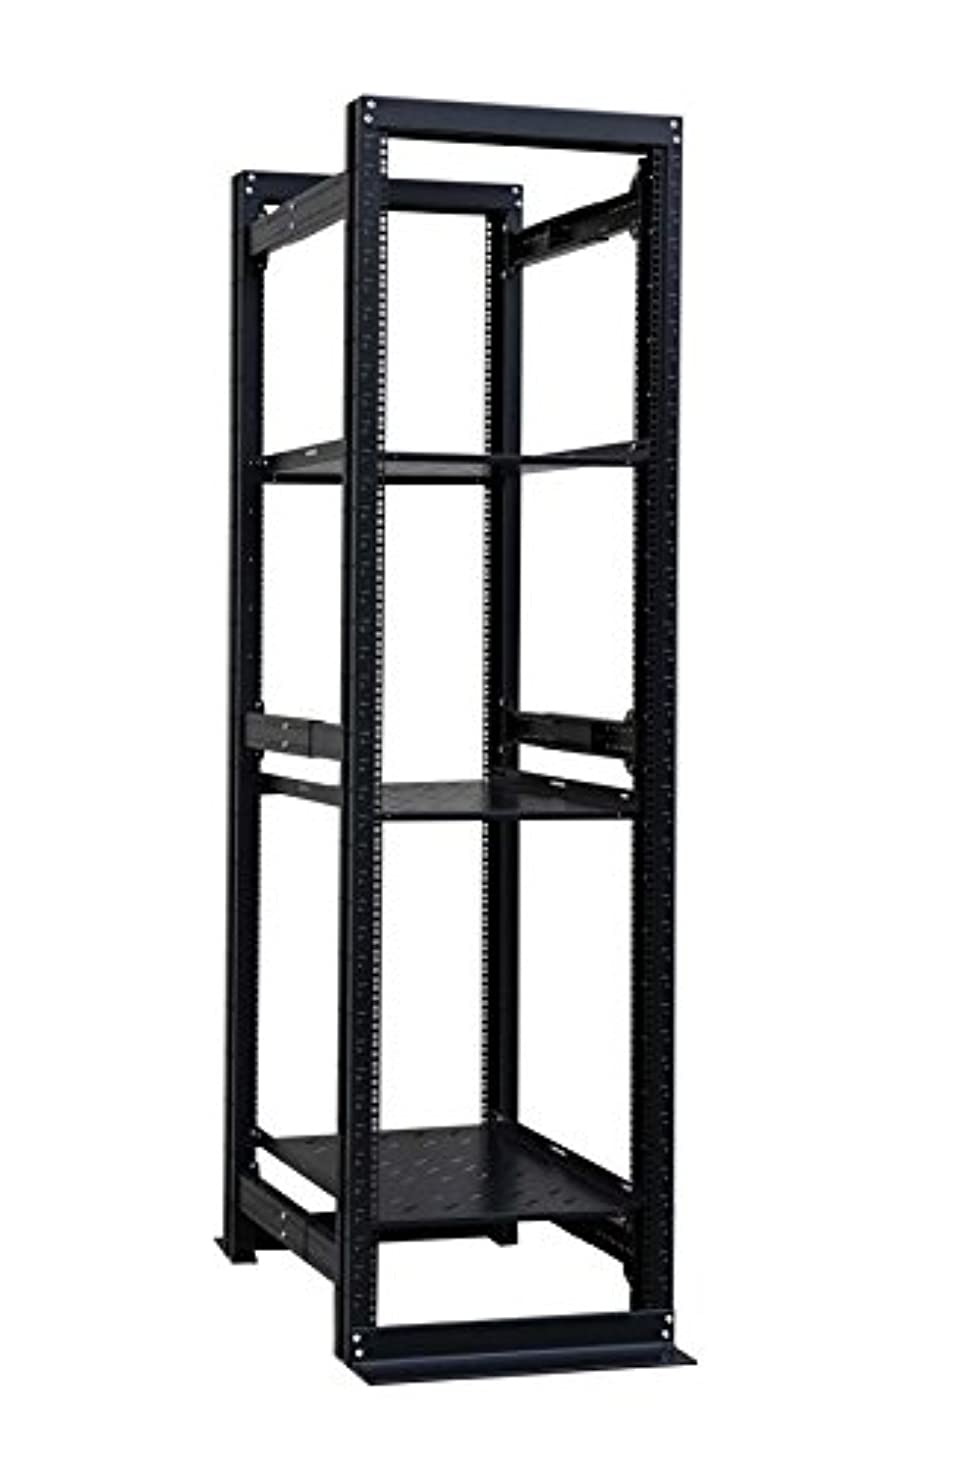 Raising Electronics Server Rack 4 Post Open Rack Frame Rack Enclosure 19 Inch Adjustable Depth Cold Rolled Steel with 3 Shelve(42U,82Inch Height)